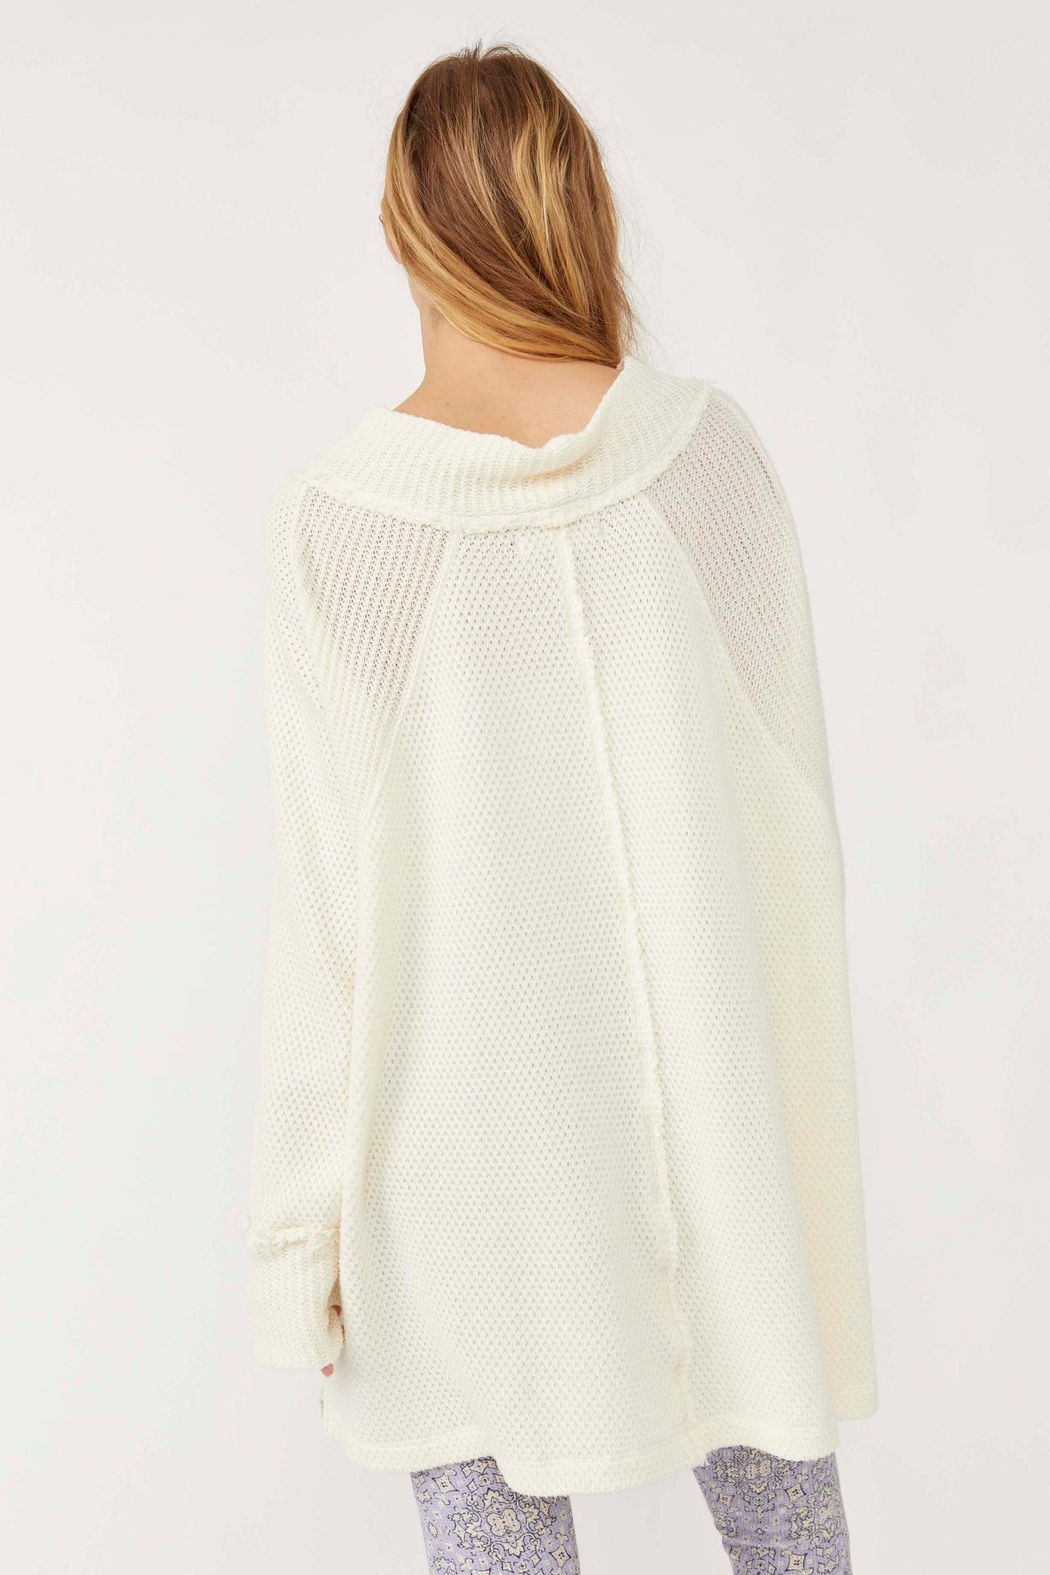 Free People She's a Keeper - Frenchnilla - Back Cropped Image